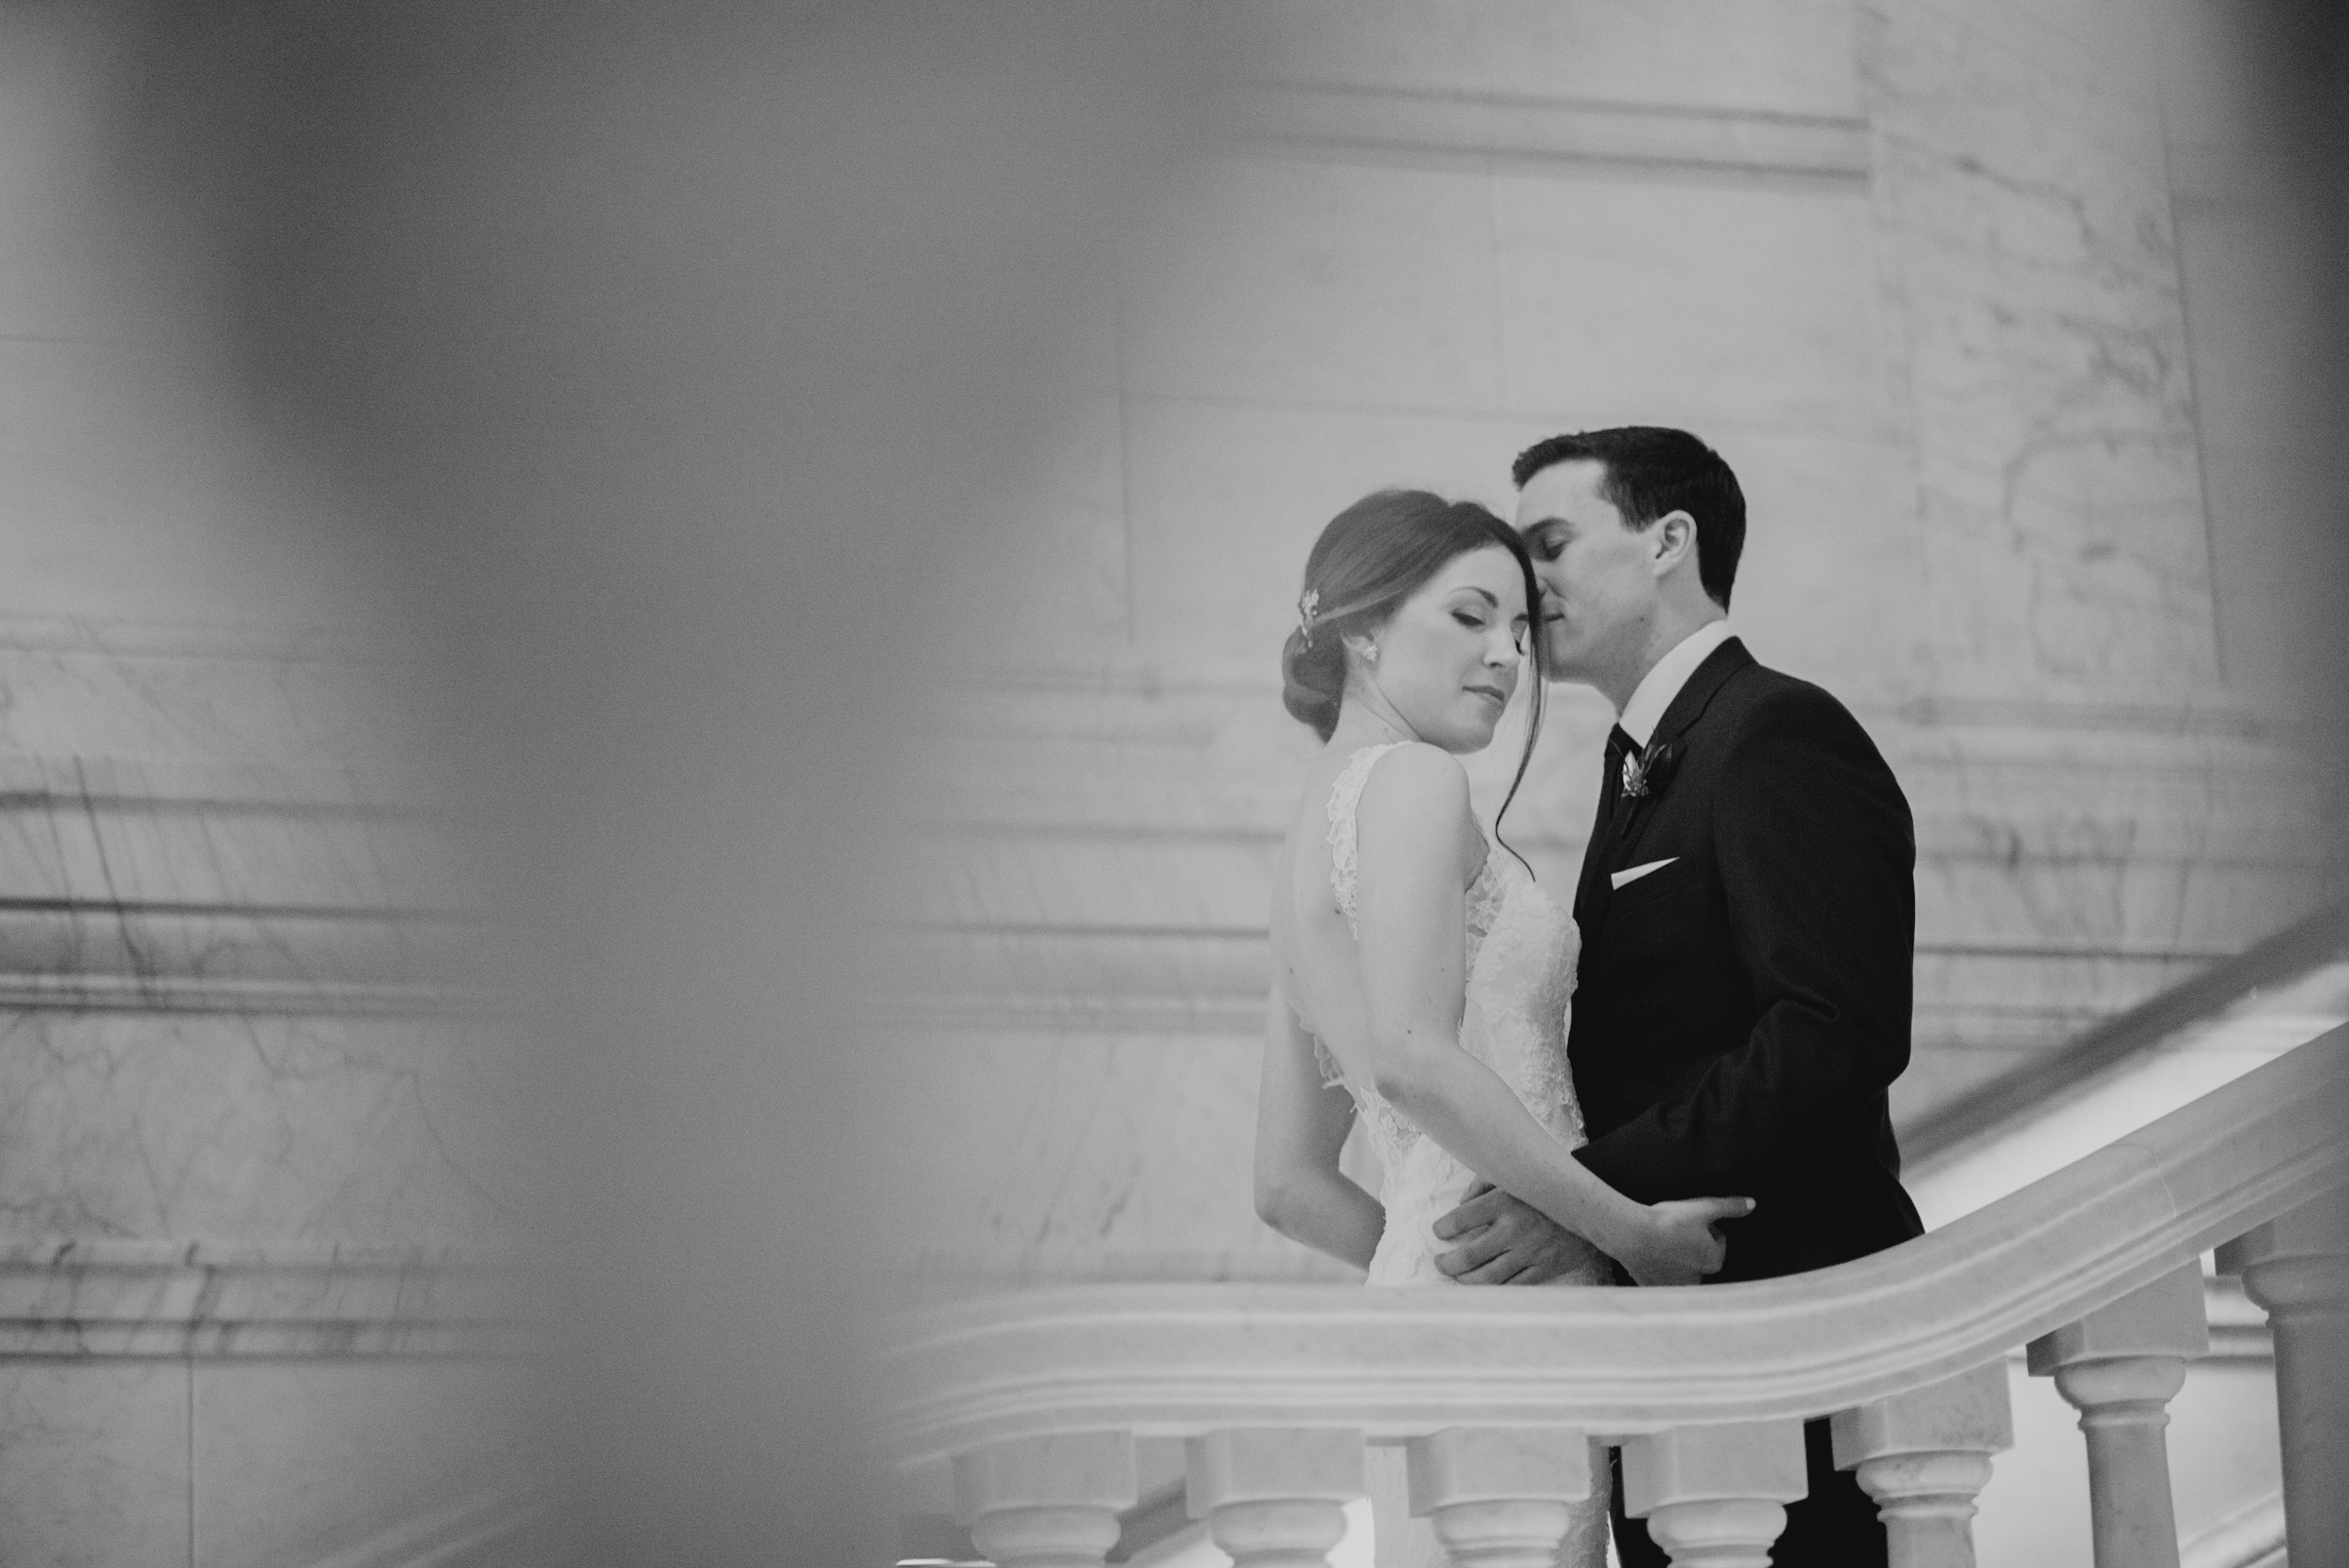 HaroldWashingtonLibraryWedding_Polly C Photography 1704141318.jpg